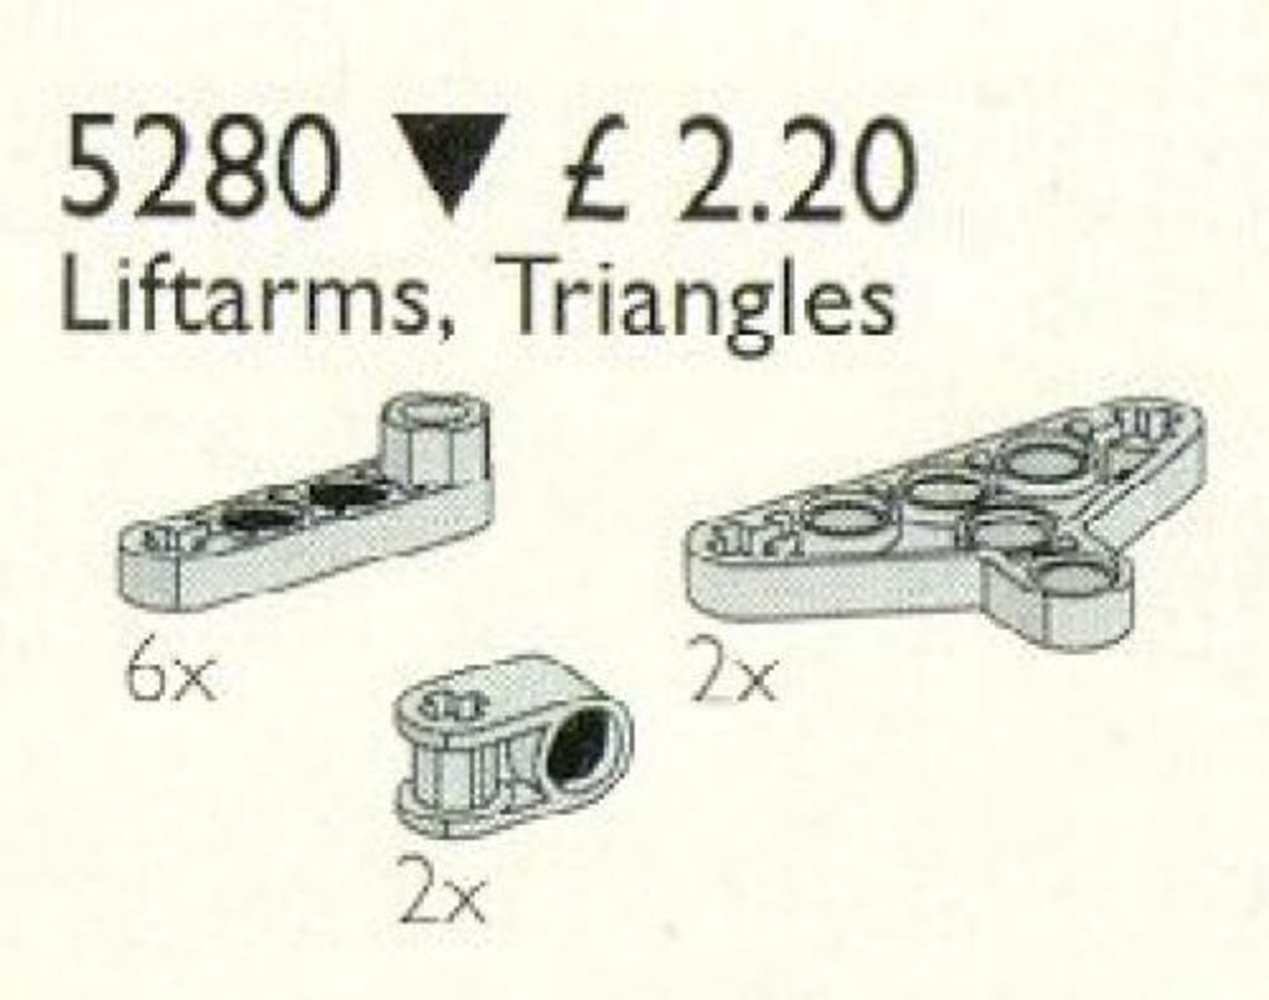 Liftarms & Triangles / Liftarms, Triangles